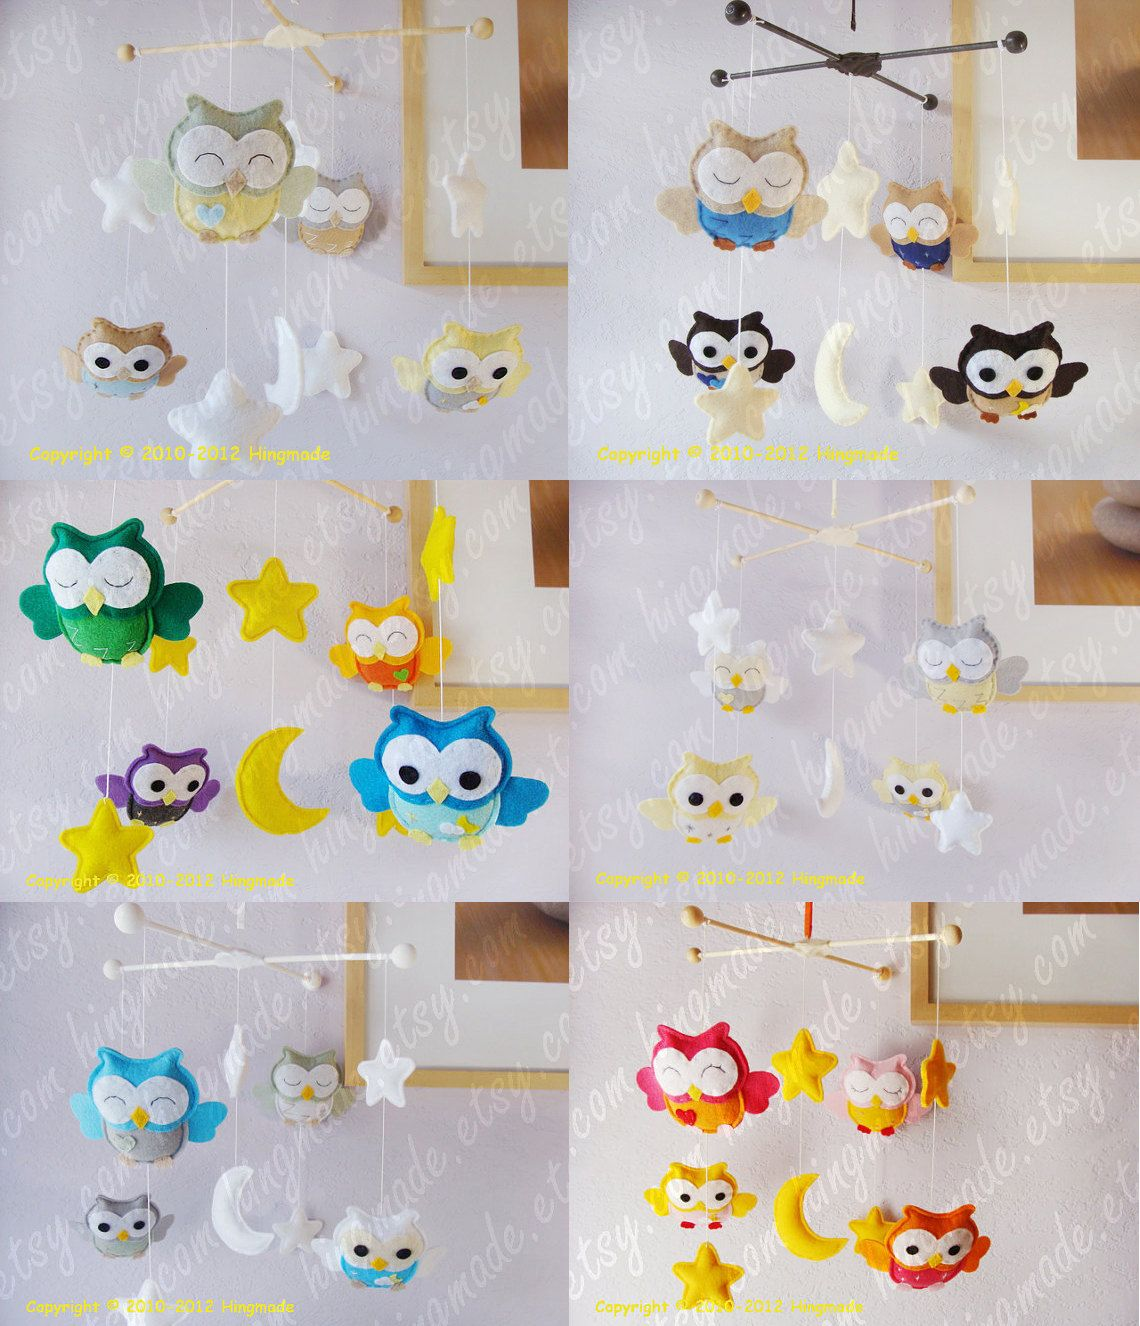 (inspiration for a DIY Totoro mobile) Baby Mobile - Nursery Mobile - Felt Mobile - Modern Mobile - Bird Owl Mobile - Blue Owls in a Yellow starry night(U can pick your colors). $98.00, via Etsy.